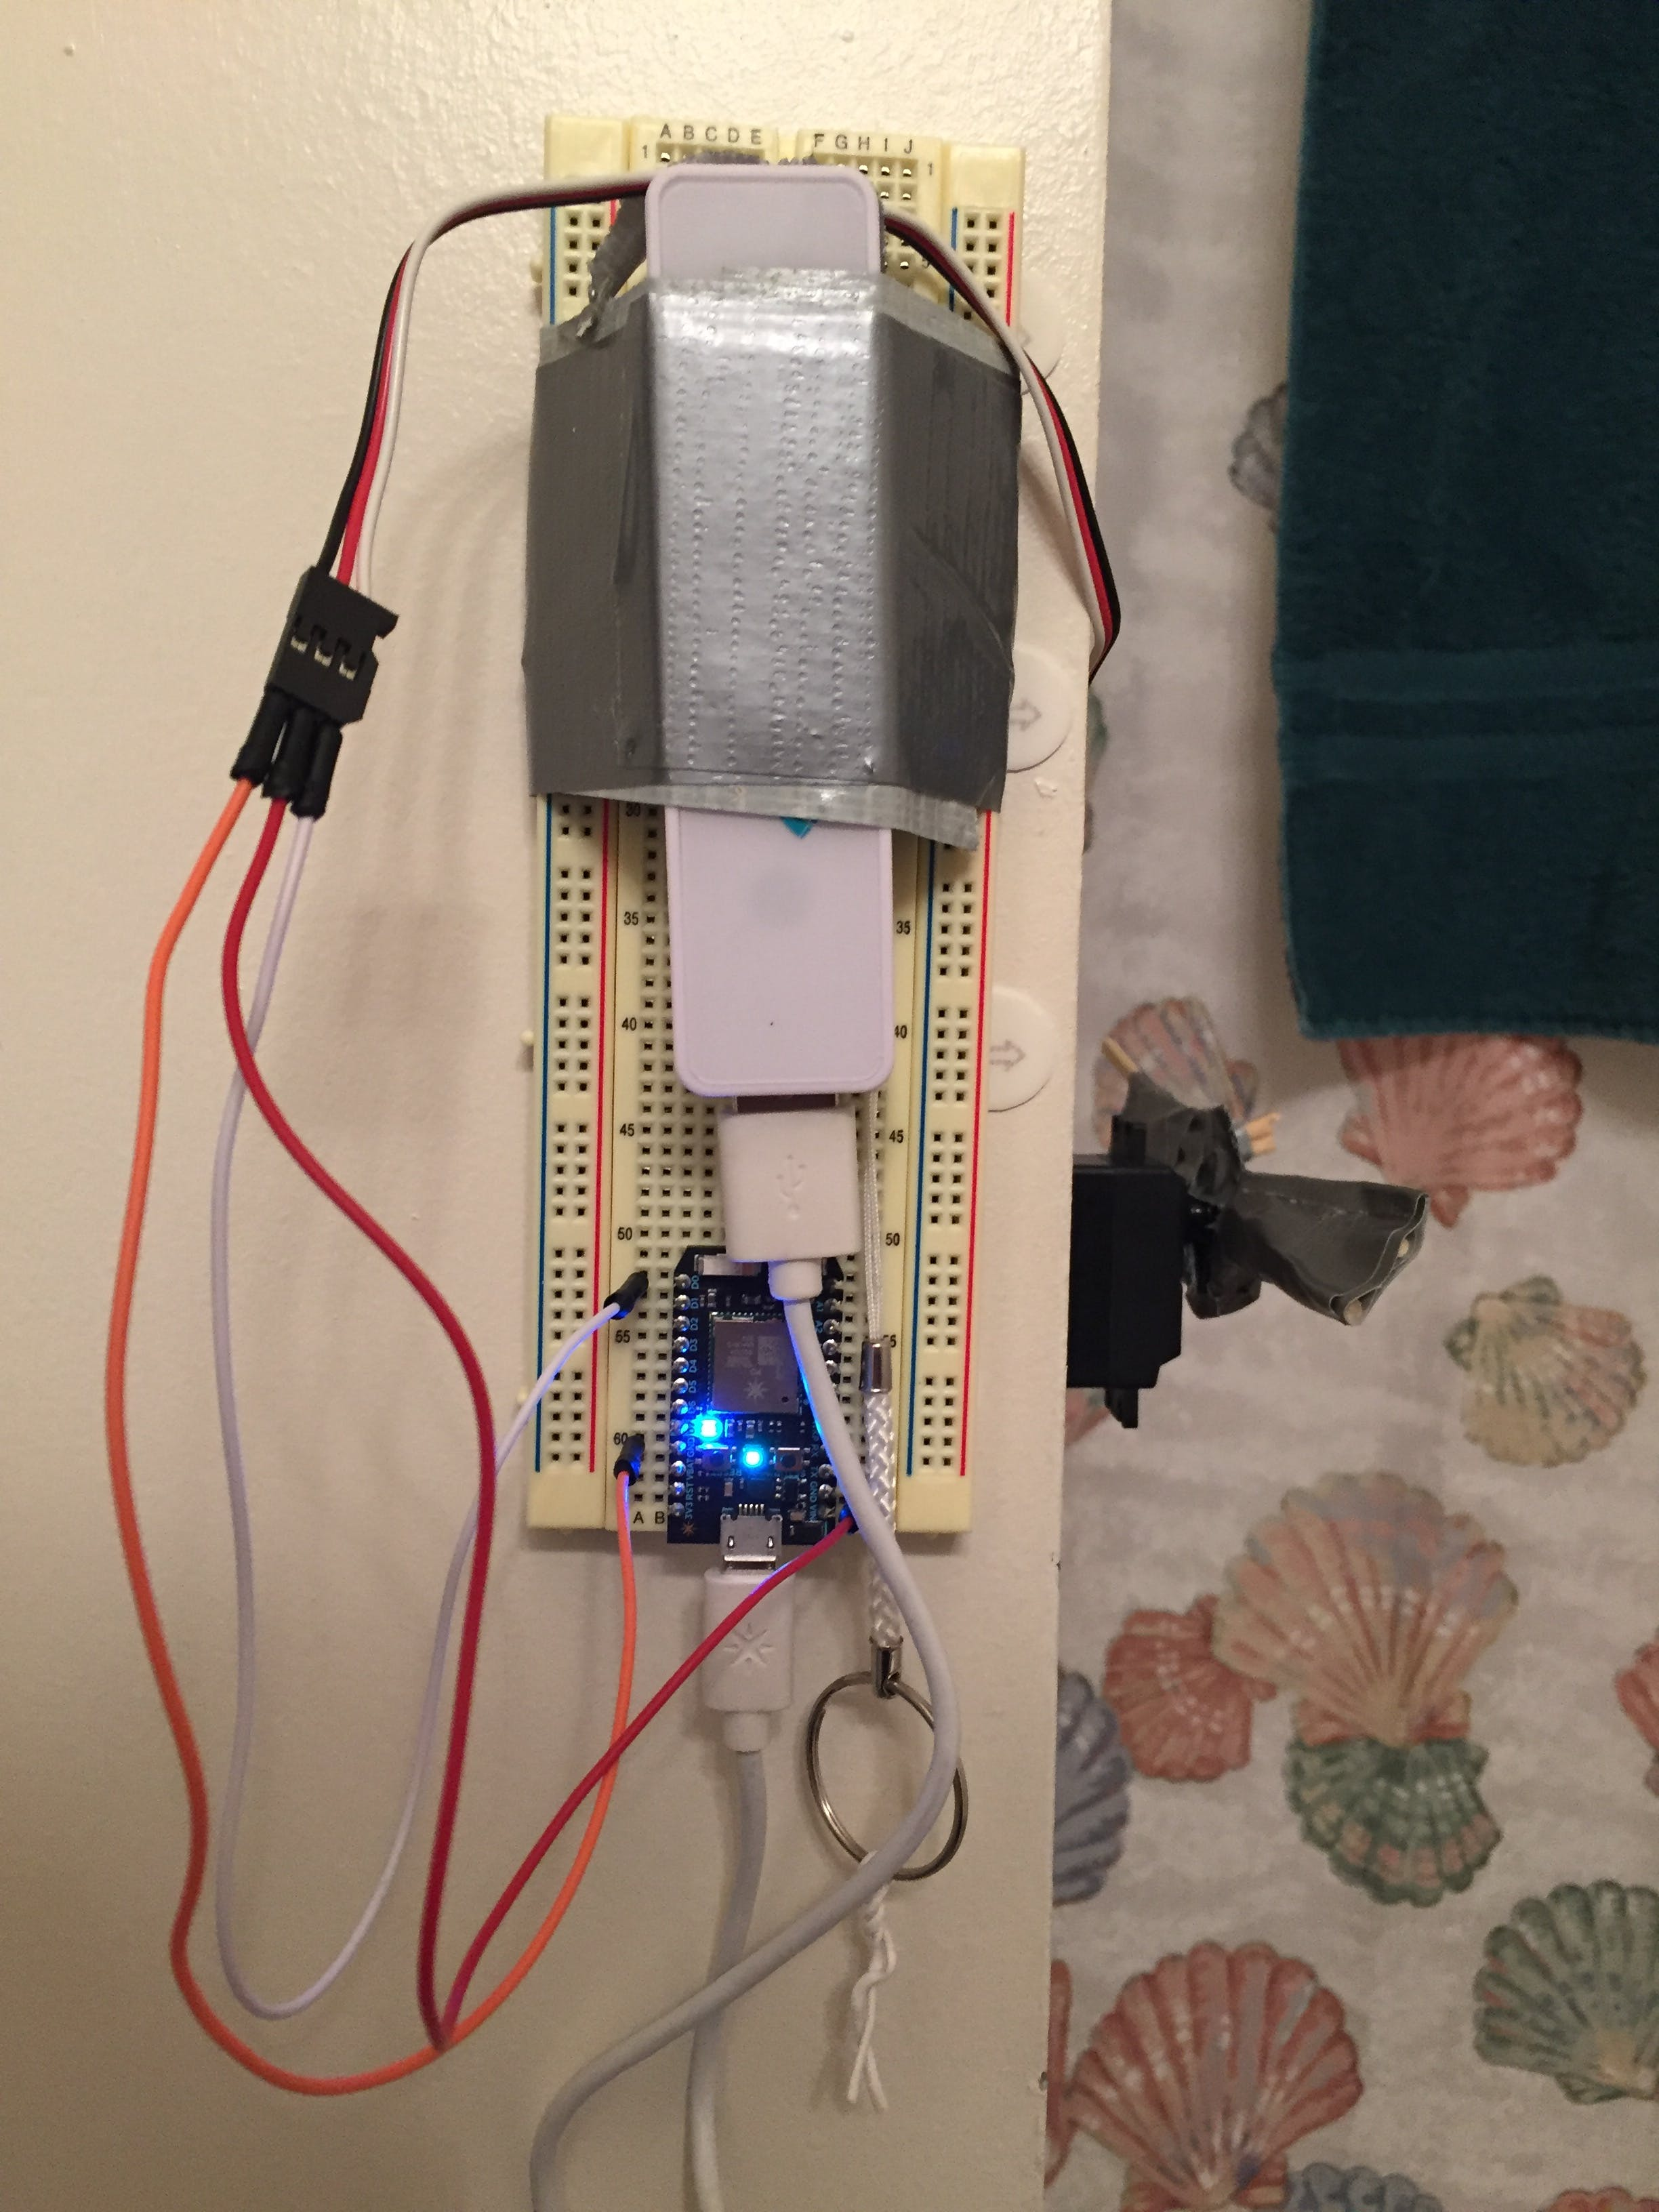 Photon 2 with servo motor and power bank connected.